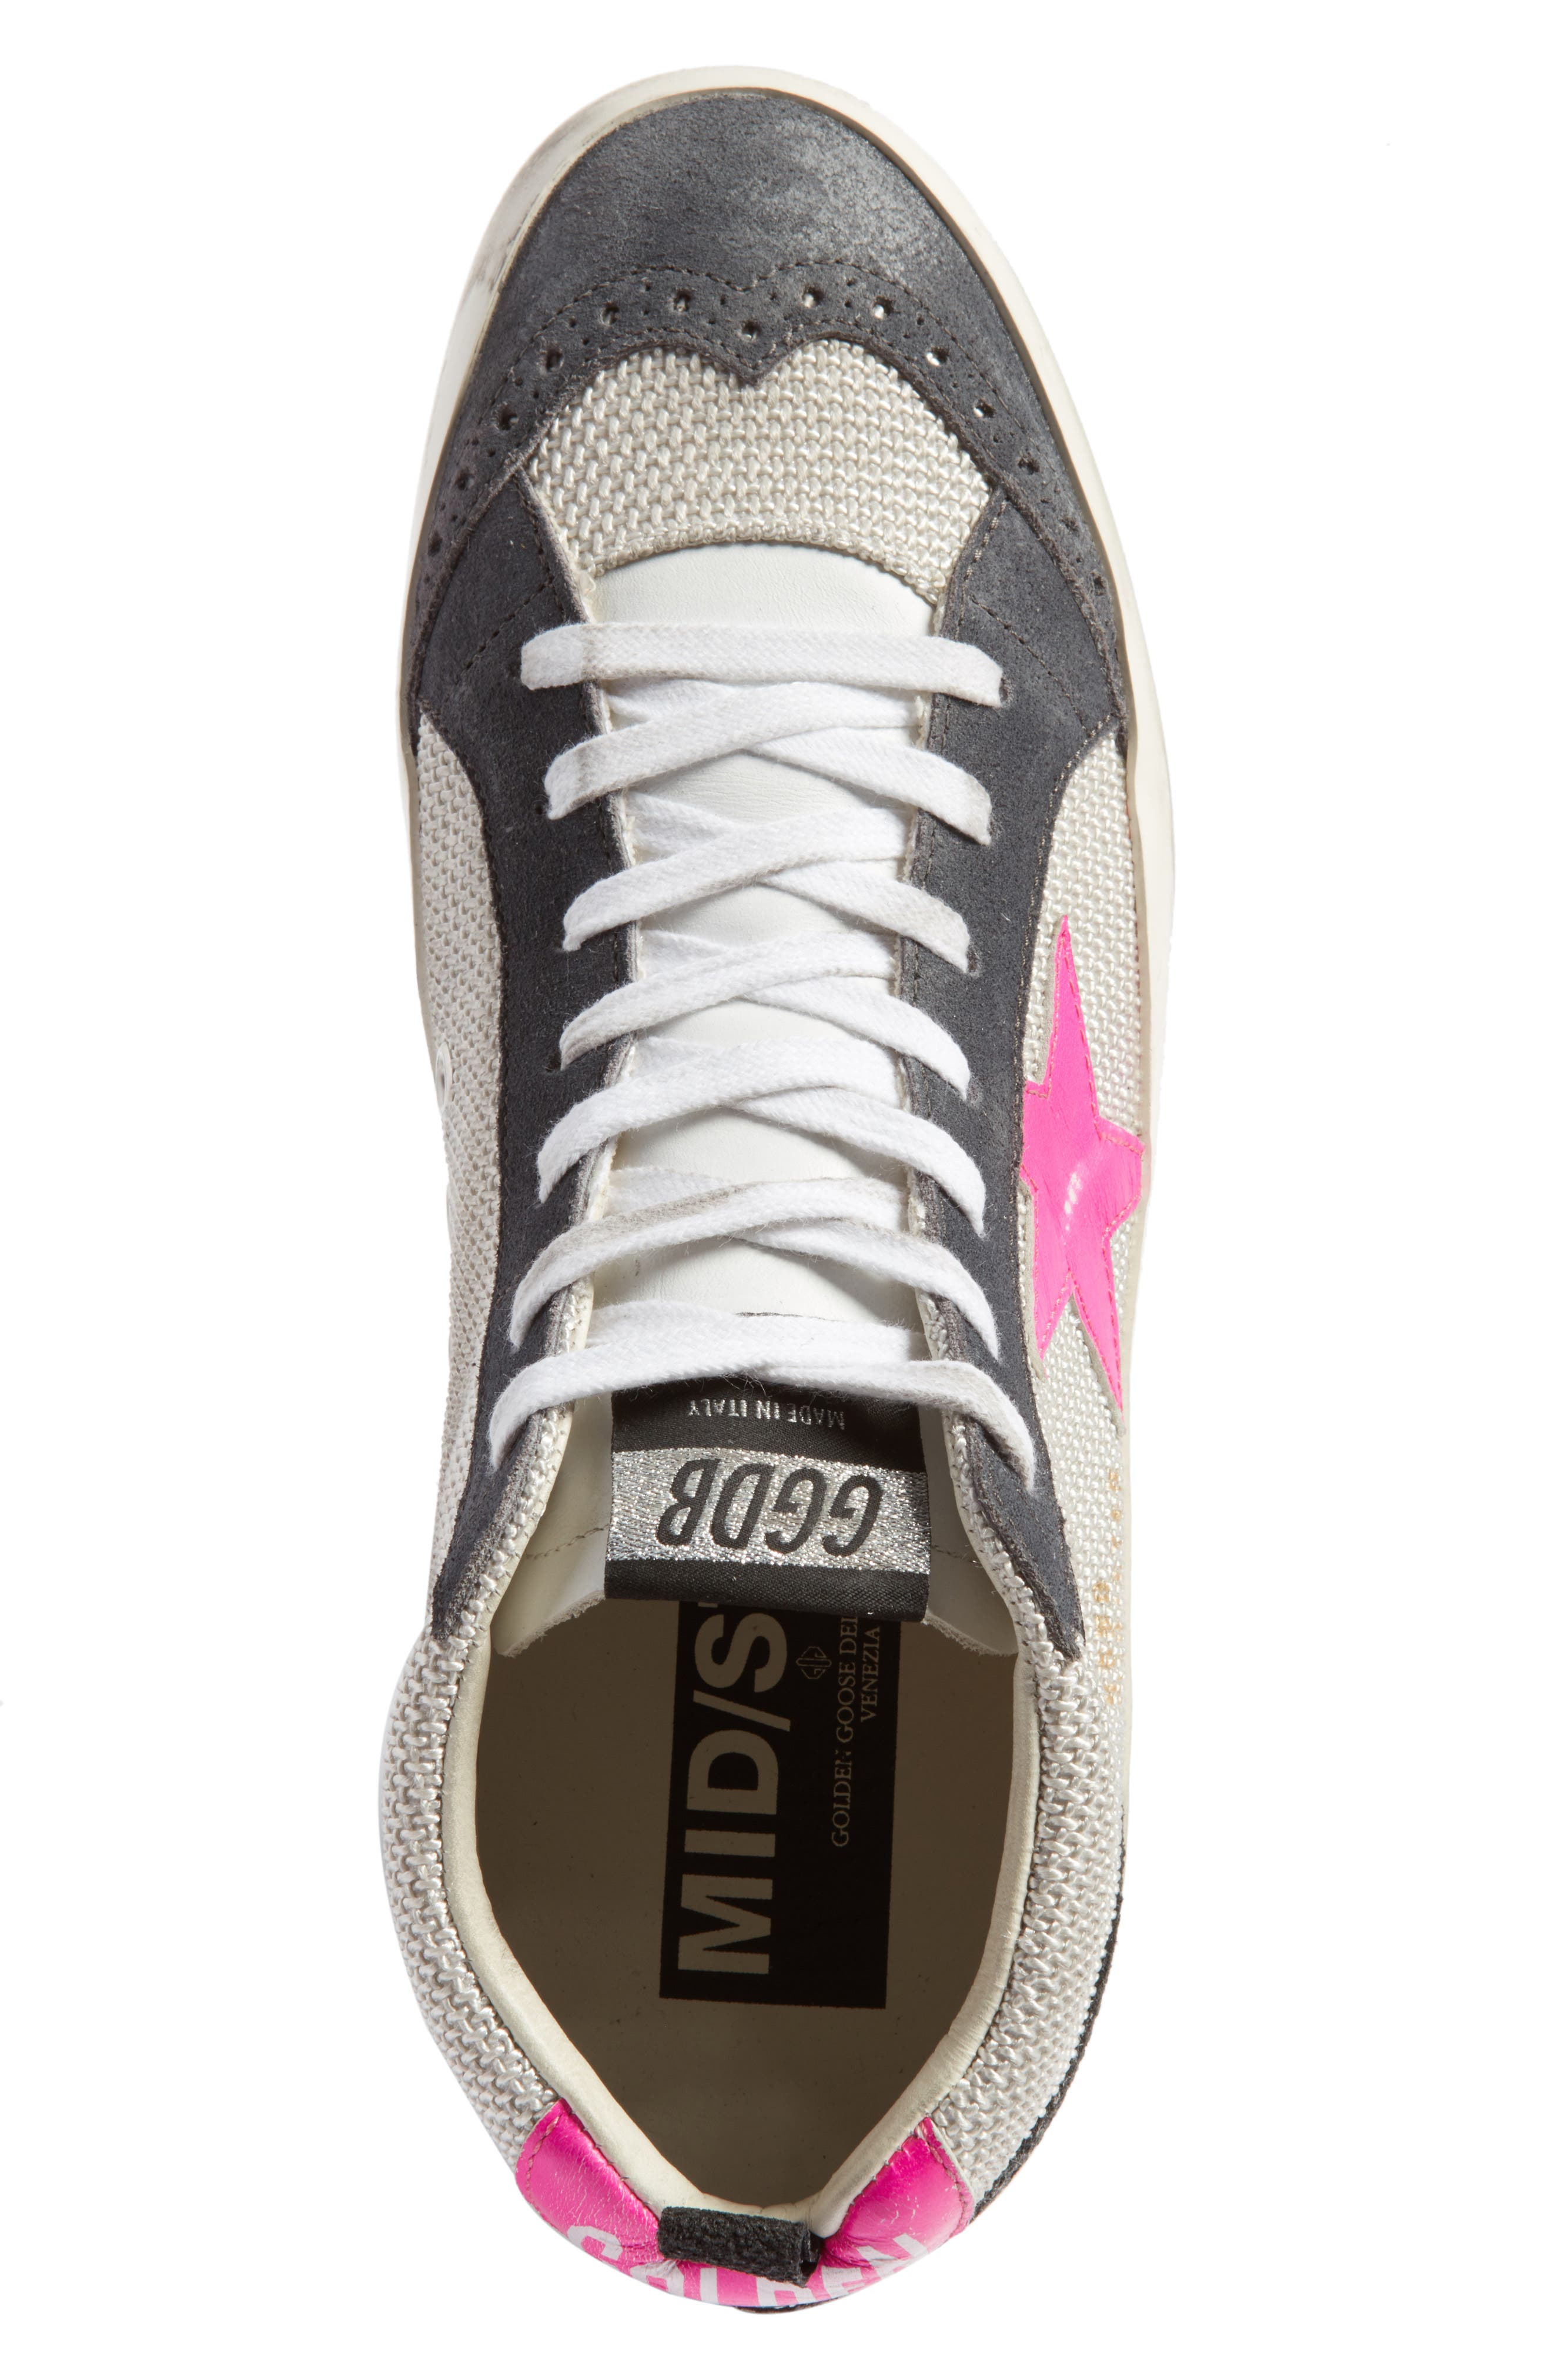 Star Mid Top Sneaker,                             Alternate thumbnail 5, color,                             Grey/ Pink